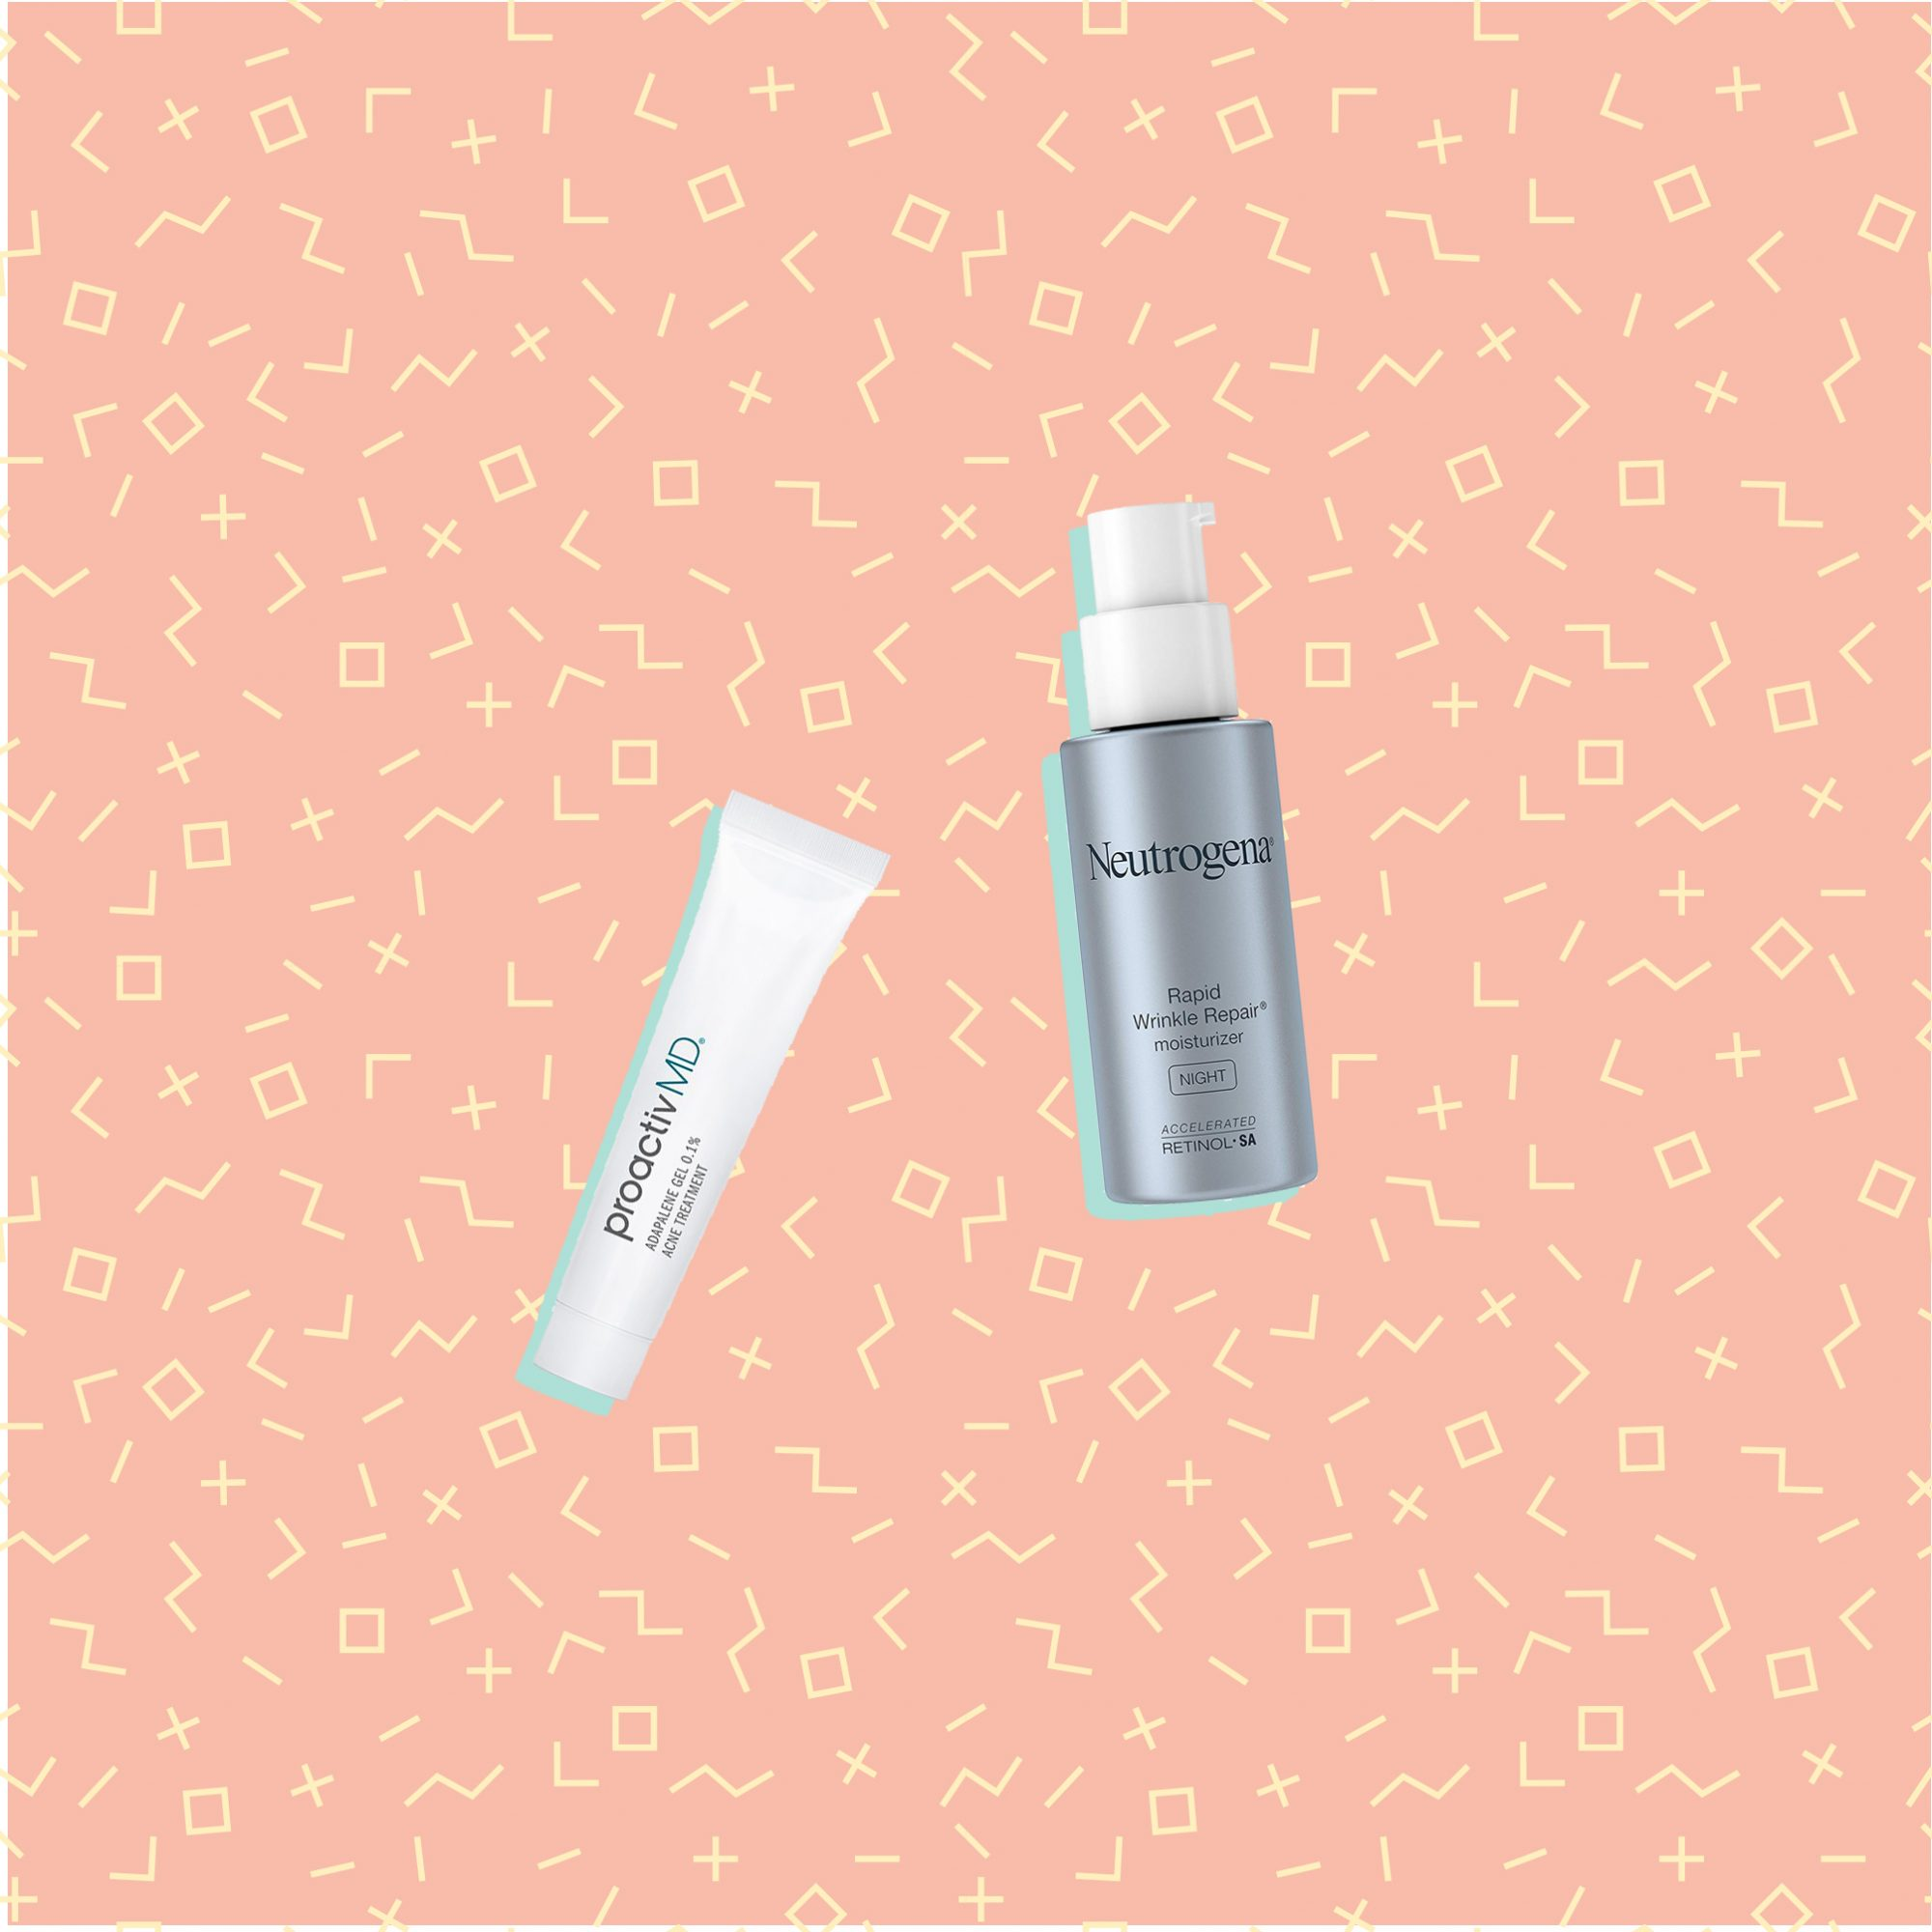 oily-skin-type-products